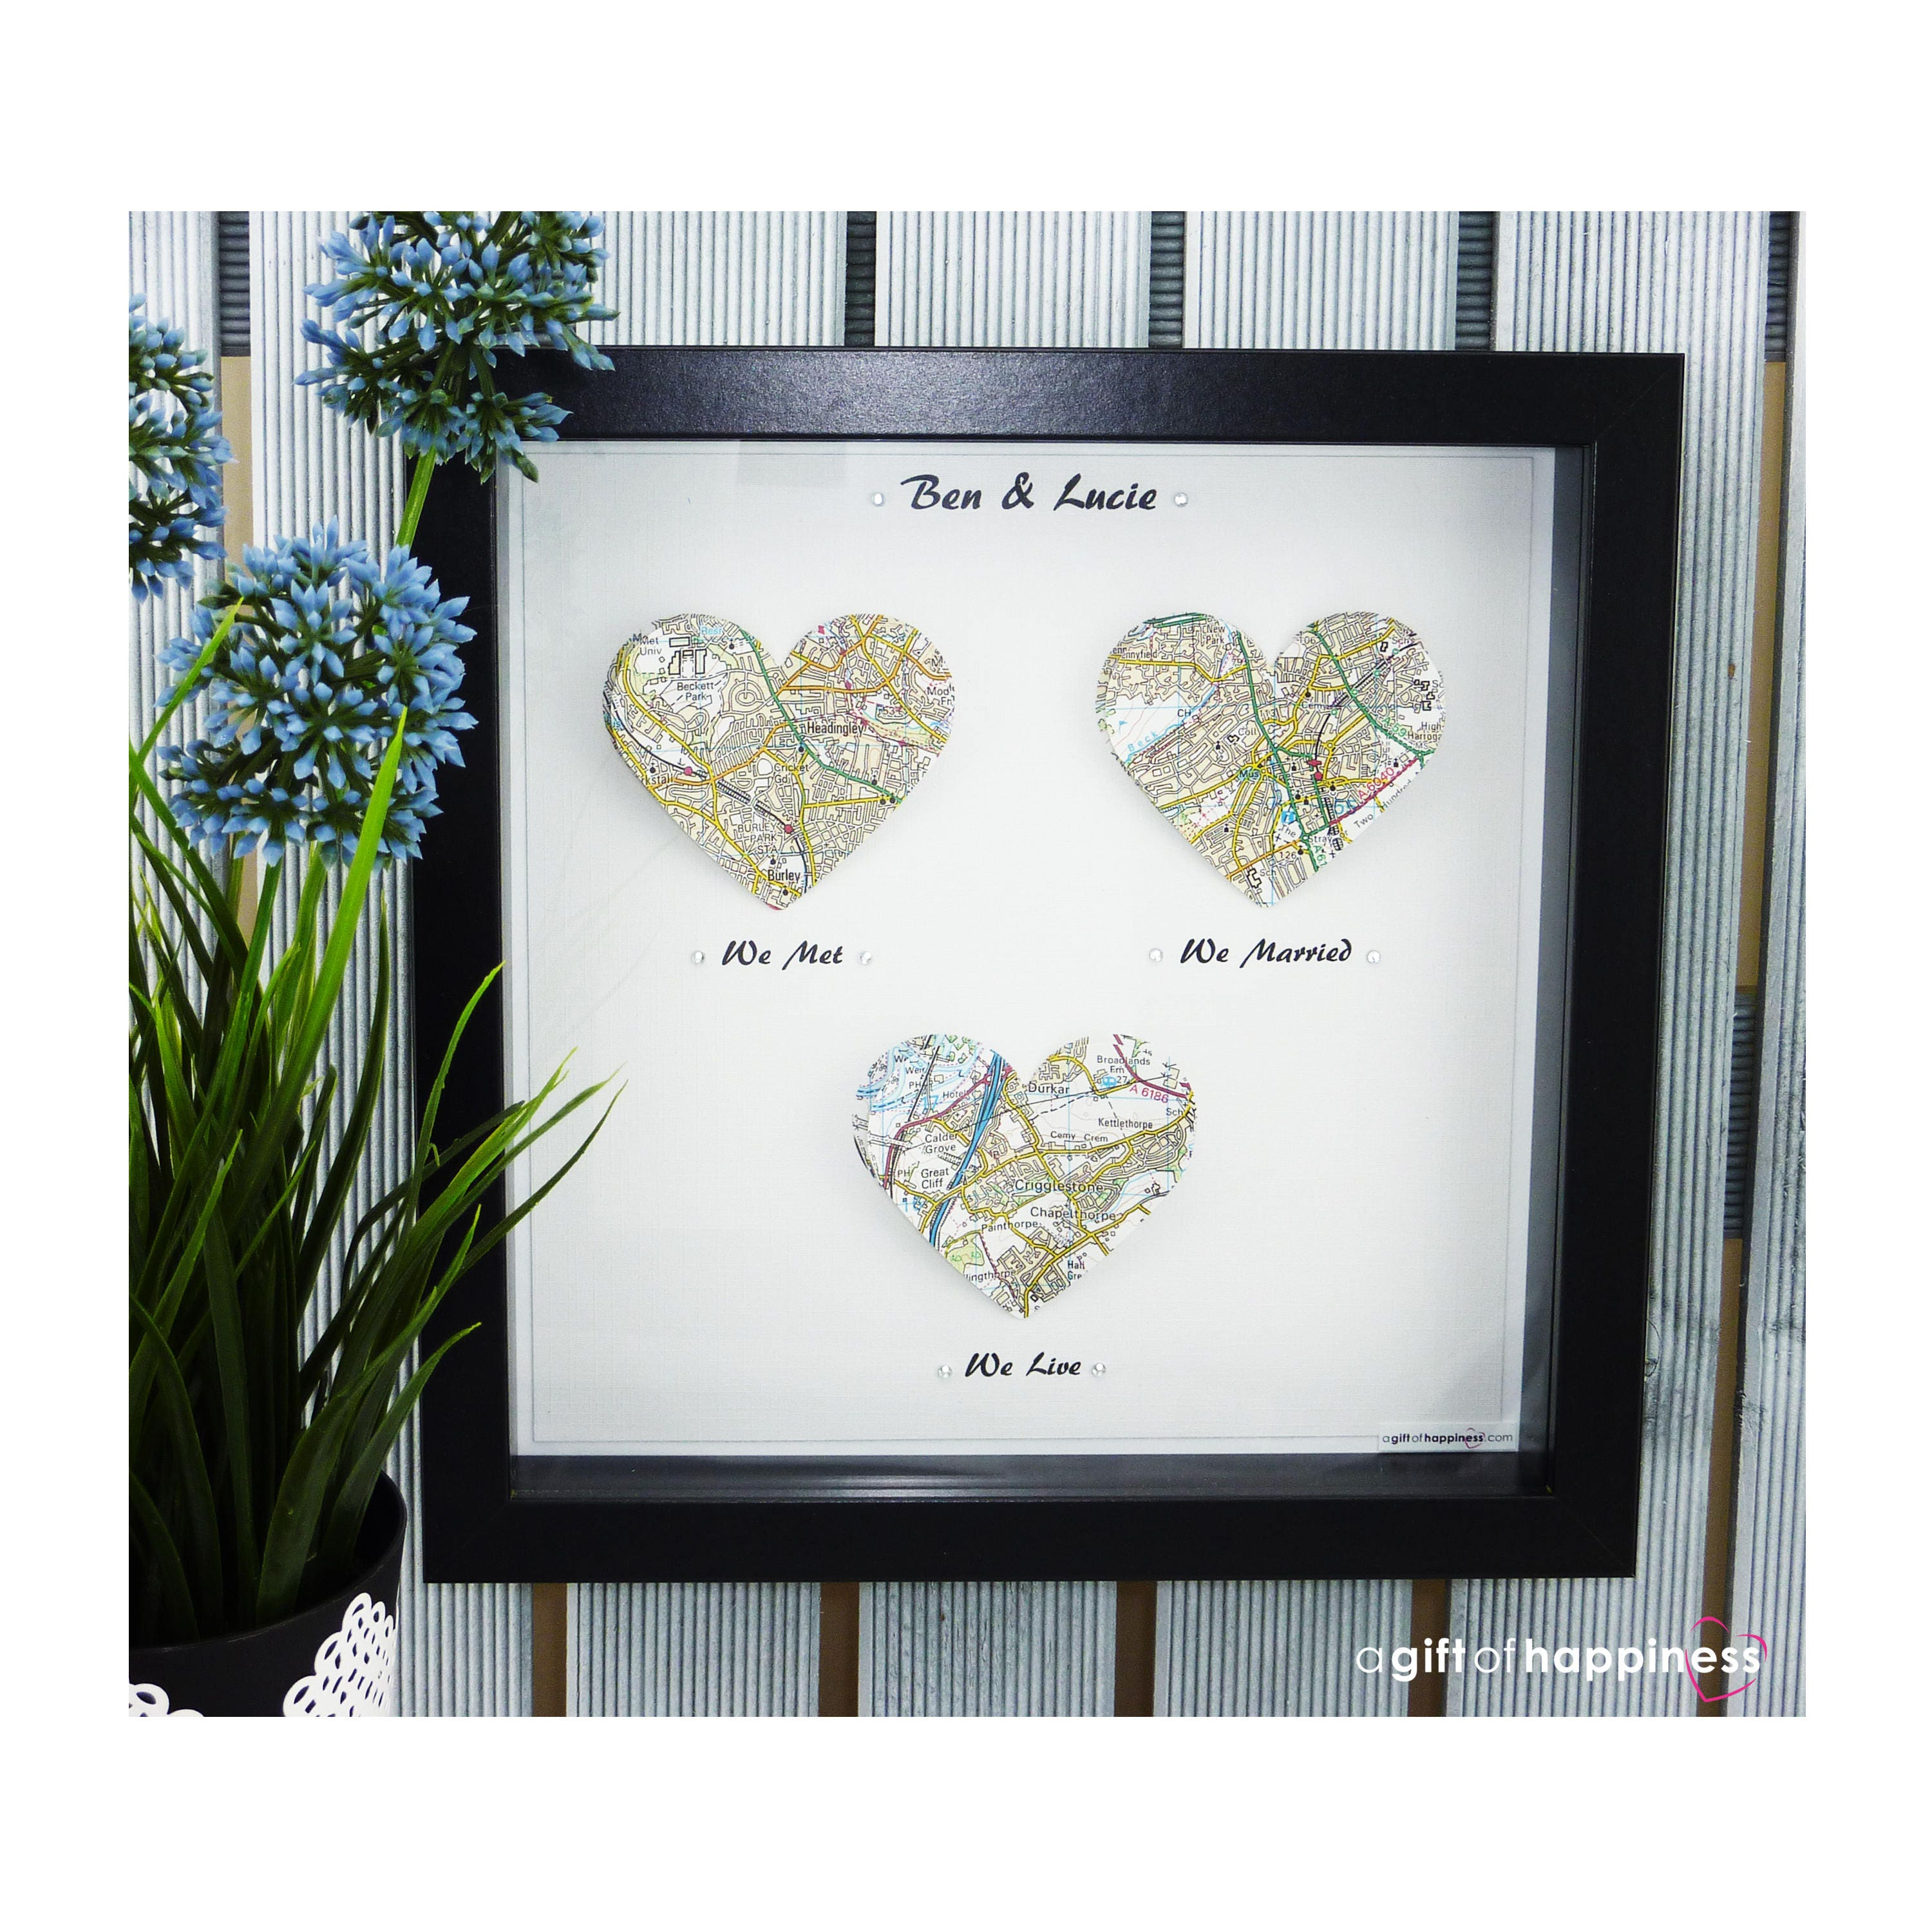 we met we married map print wedding gift paper anniversary first